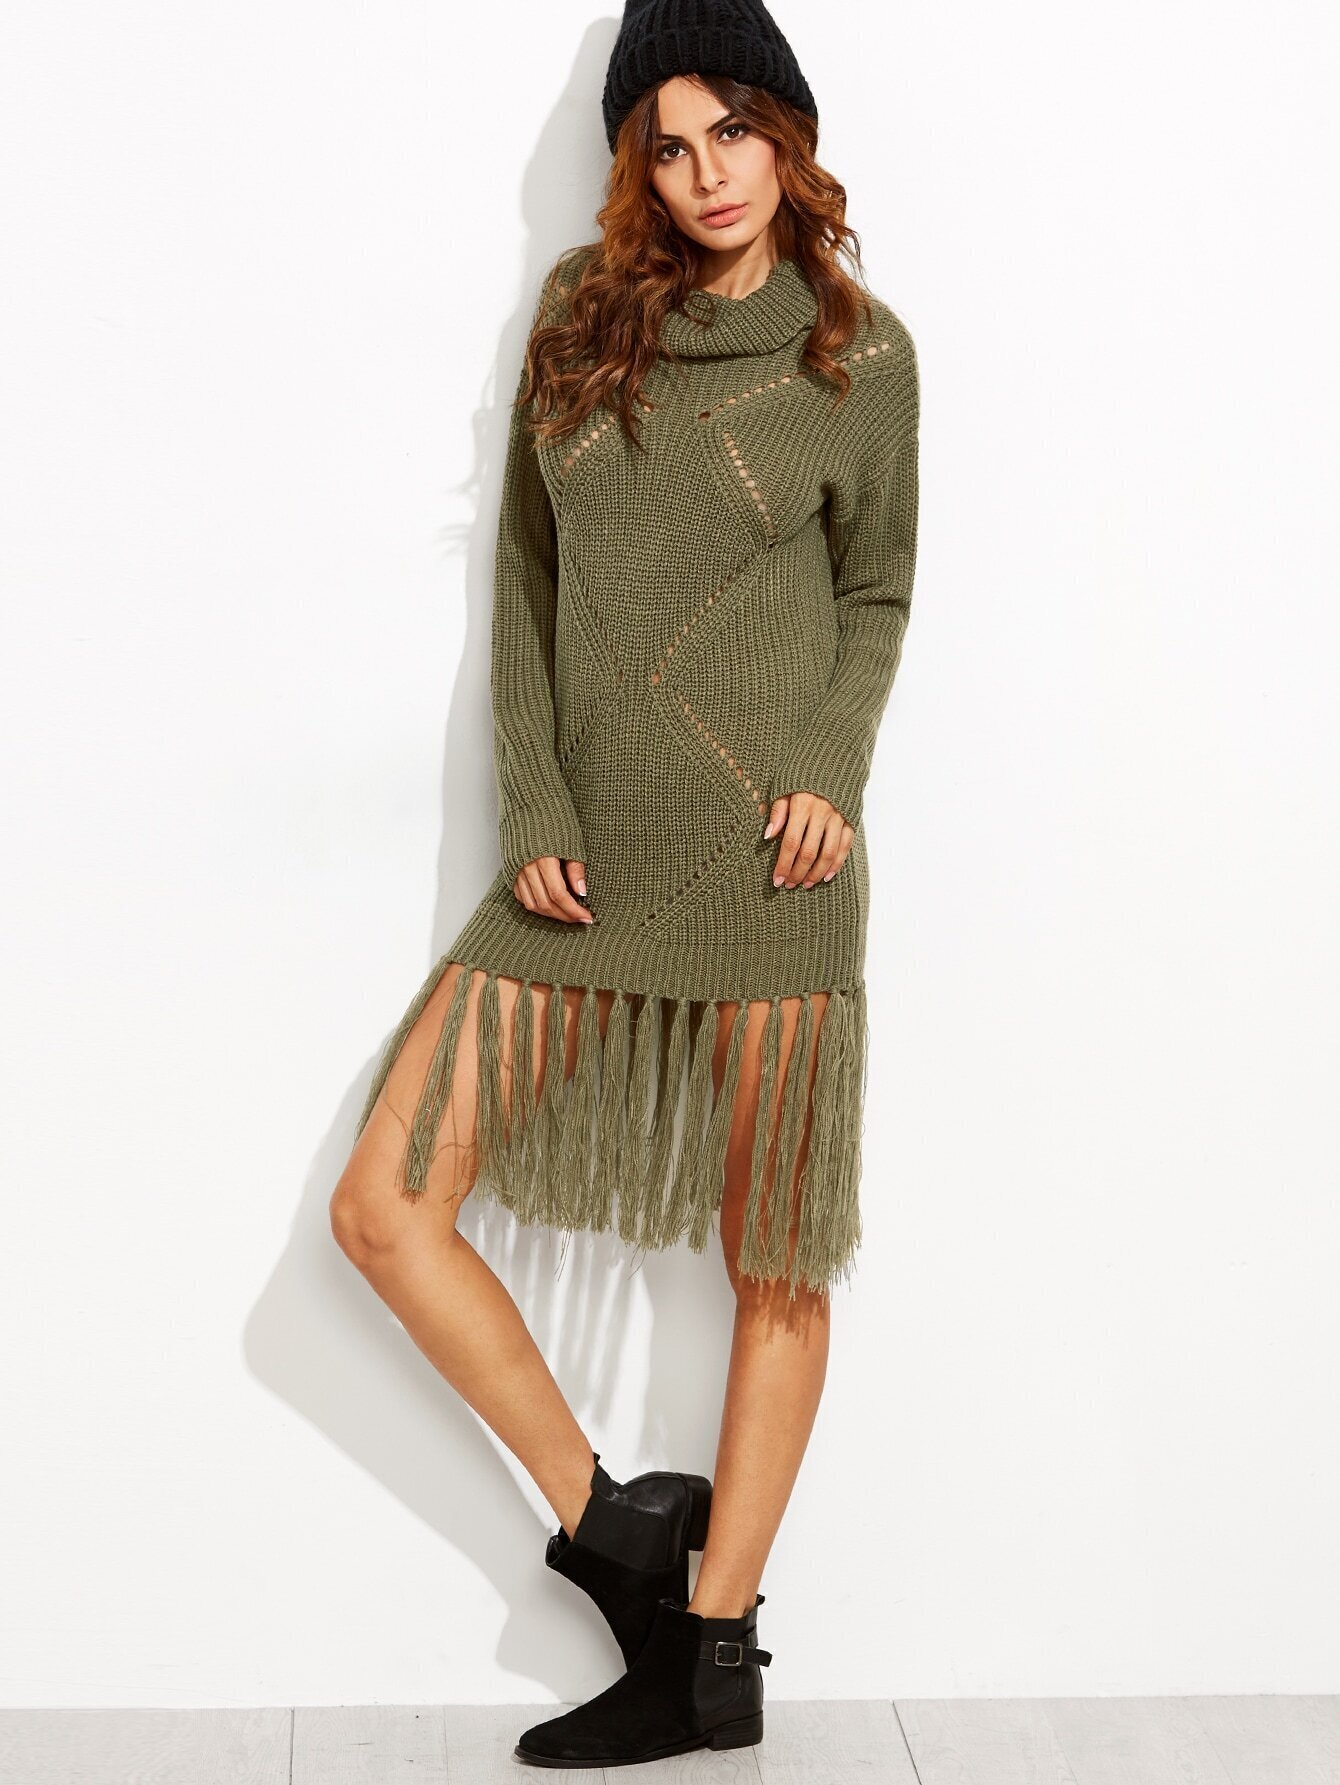 693478656ef Olive Green Eyelet Geometric Knit Fringe Trim Sweater Dress ...